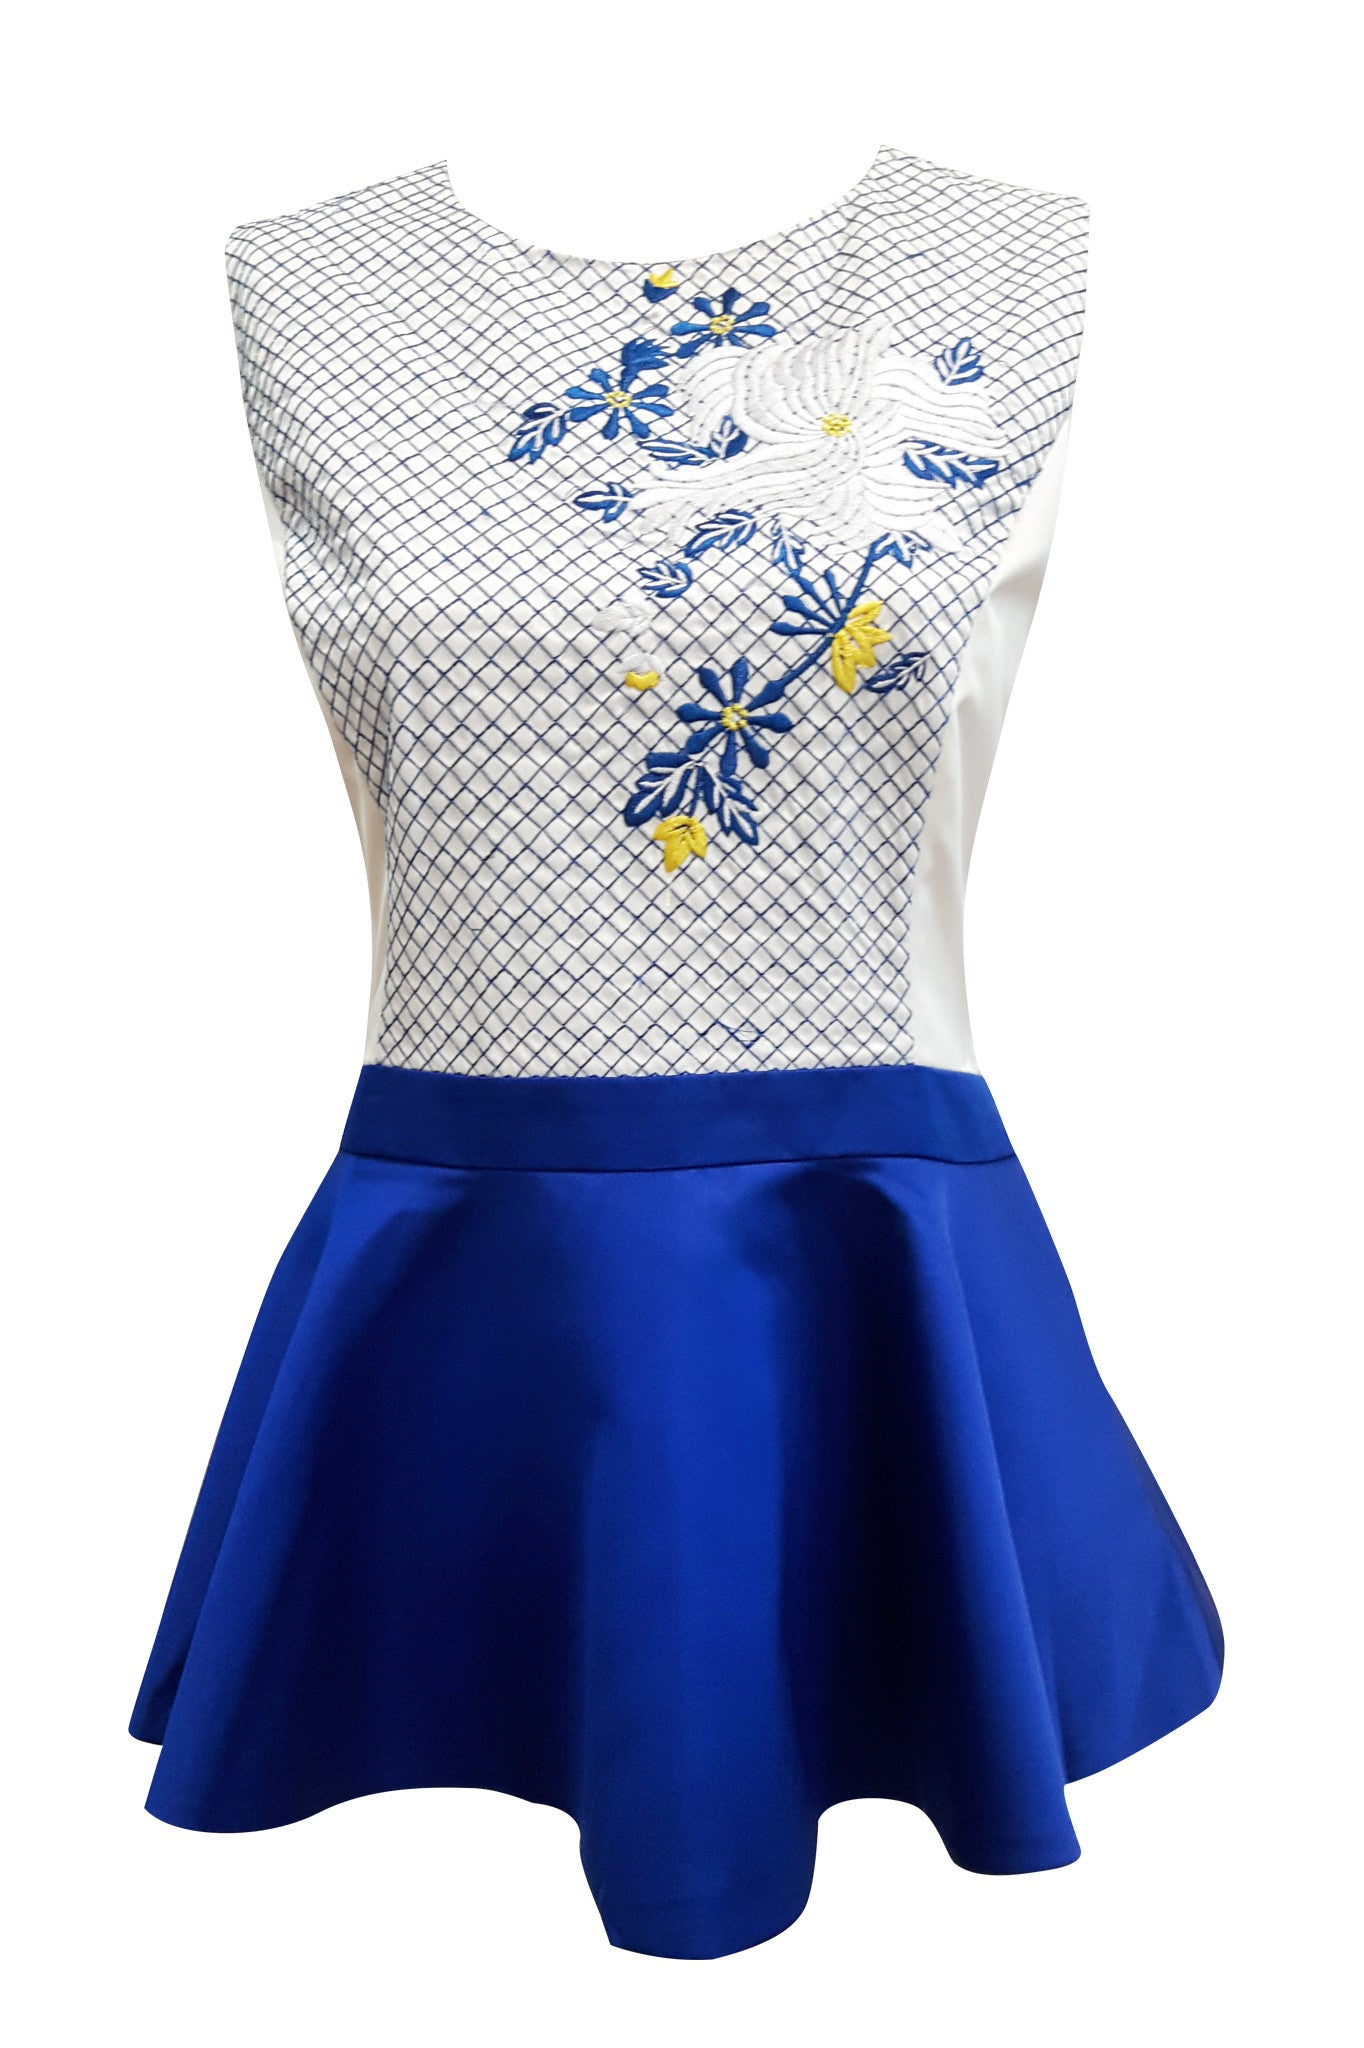 Adult-Floral Embroidery Peplum Top